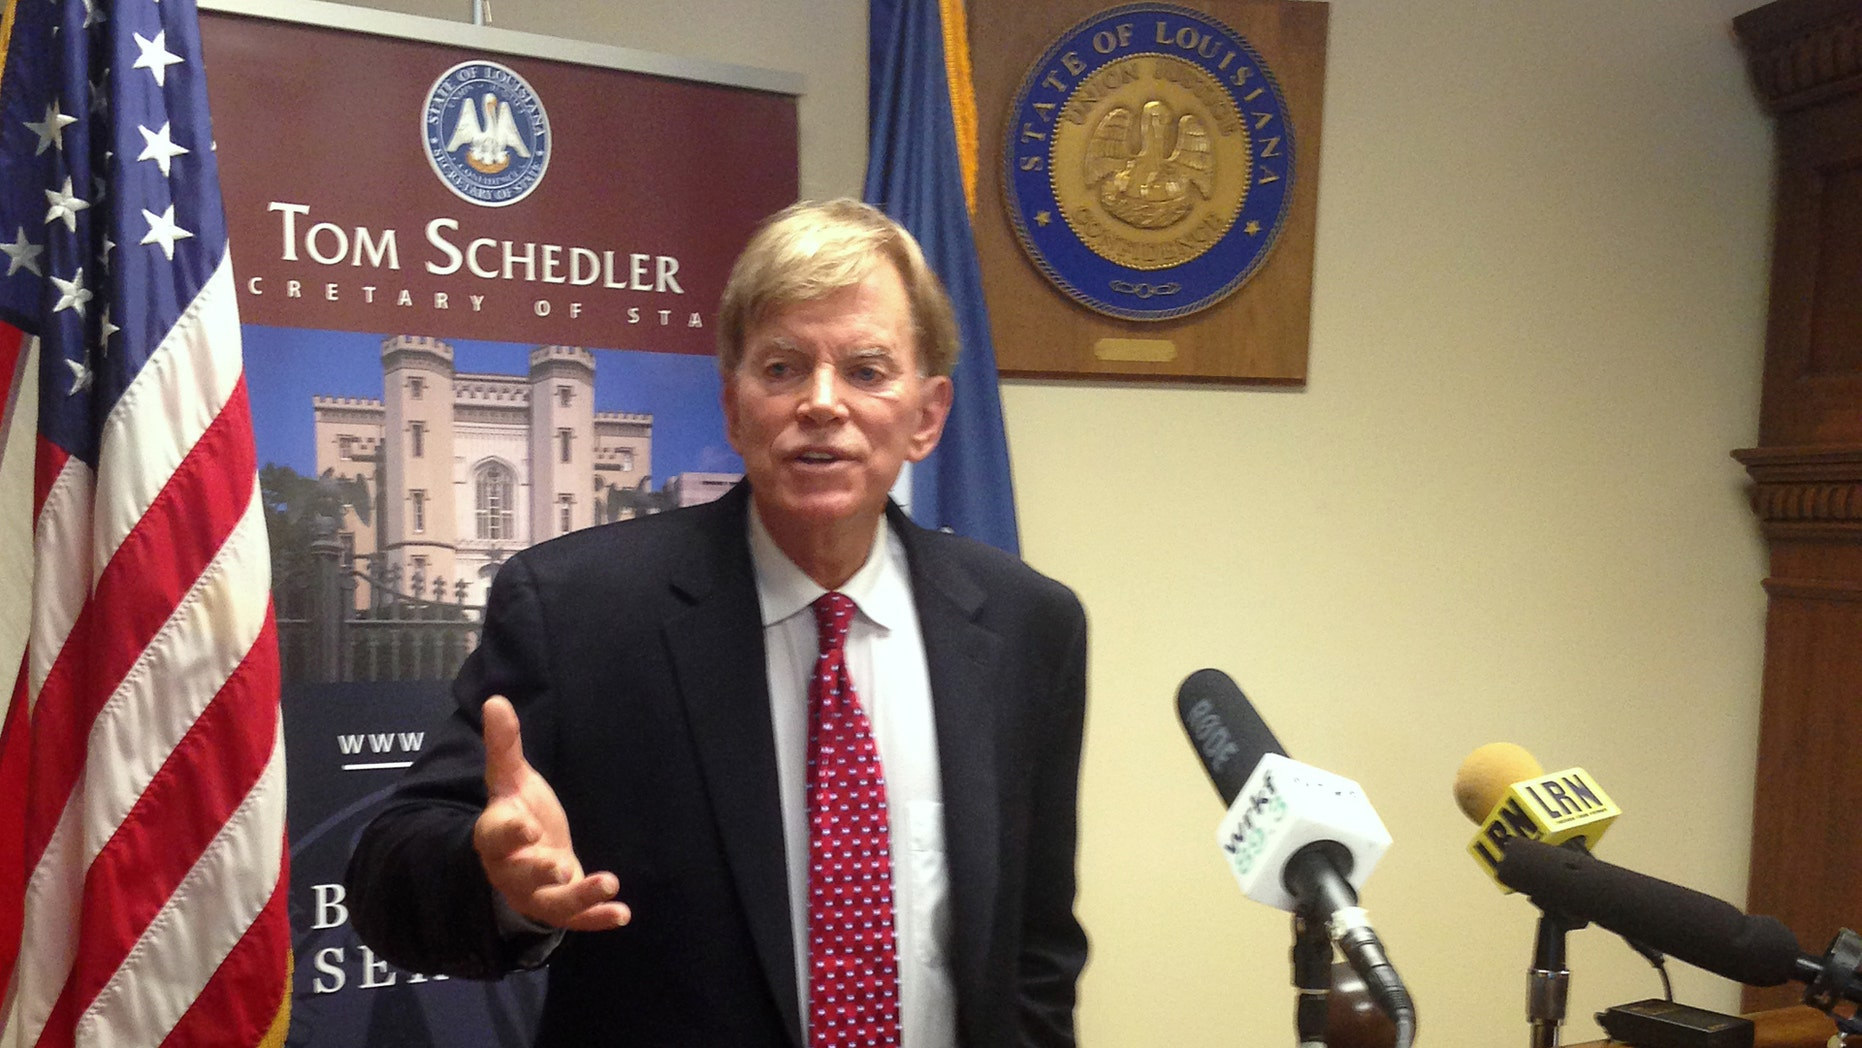 File photo - Former leader of the Ku Klux Klan David Duke speaks to media at the Louisiana Secretary of State's office after filing to run as a Republican for United States Senate in Baton Rouge, Louisiana, U.S. July 22, 2016. (REUTERS/Bryn Stole)